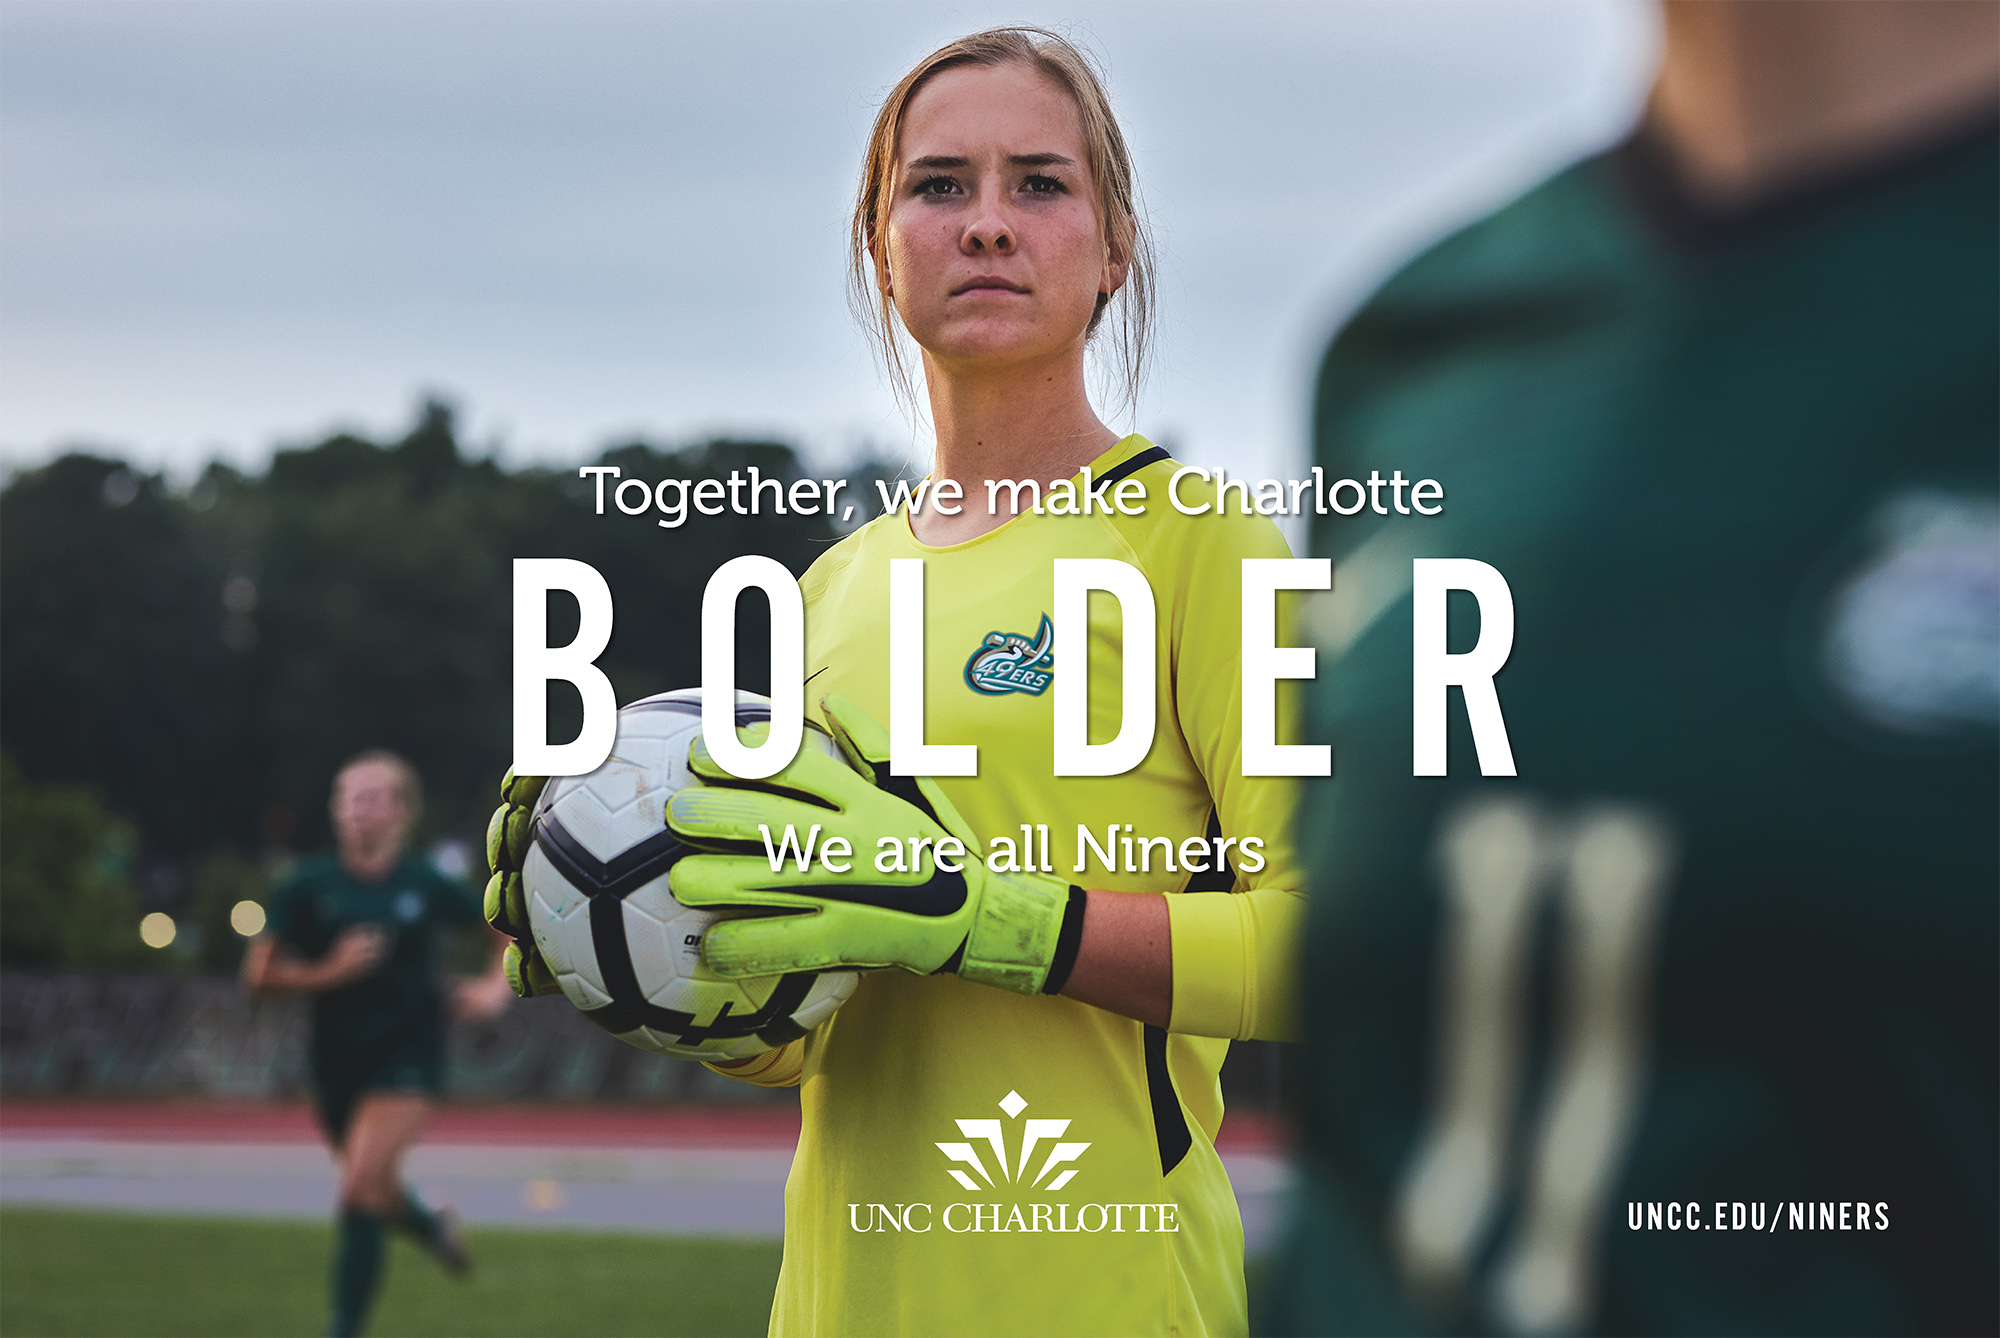 Together, we make Charlotte BOLDER.